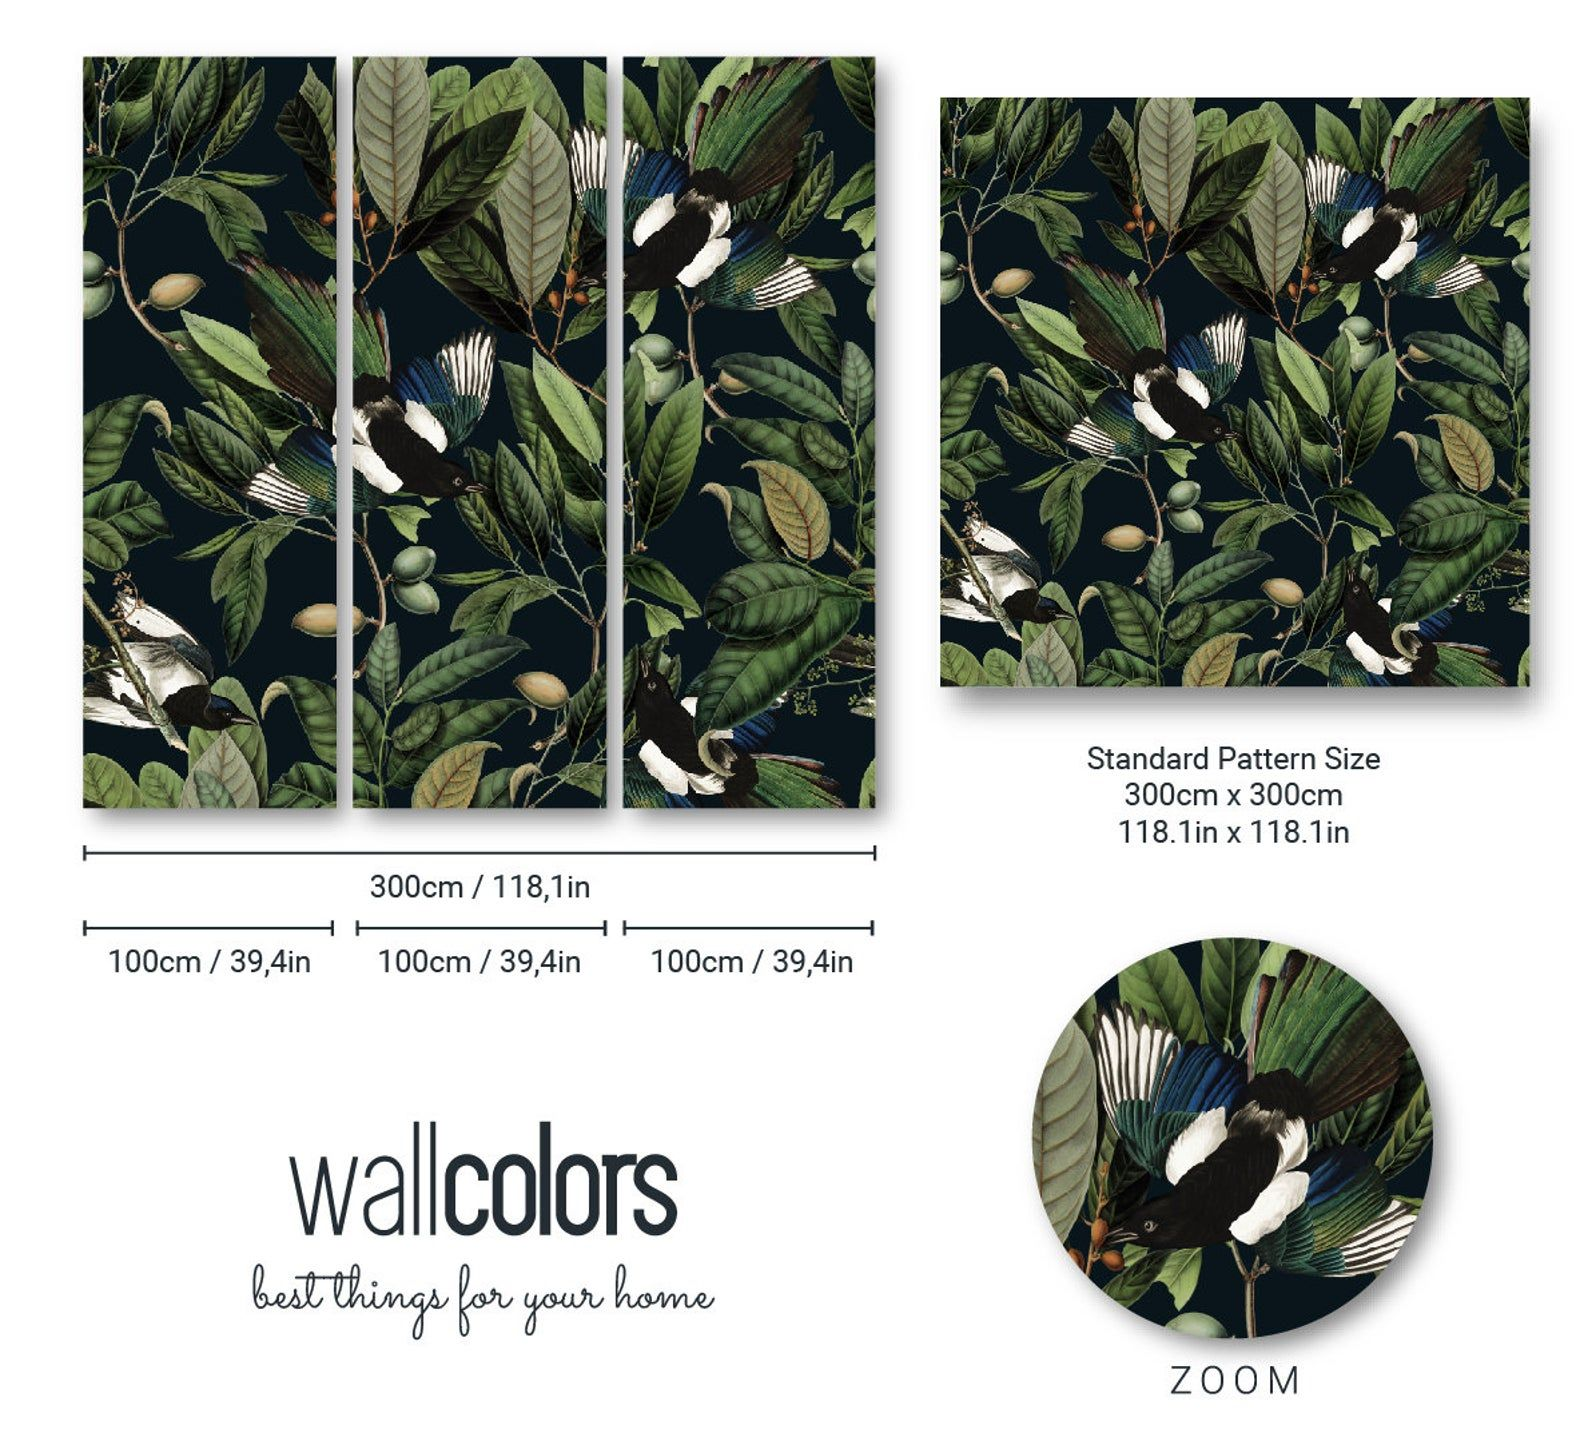 Removable Vintage Wallpaper Blue Bird And Leaves Pattern Dark Background Unique Graphics Botanical Room Decor Wall Mural 18